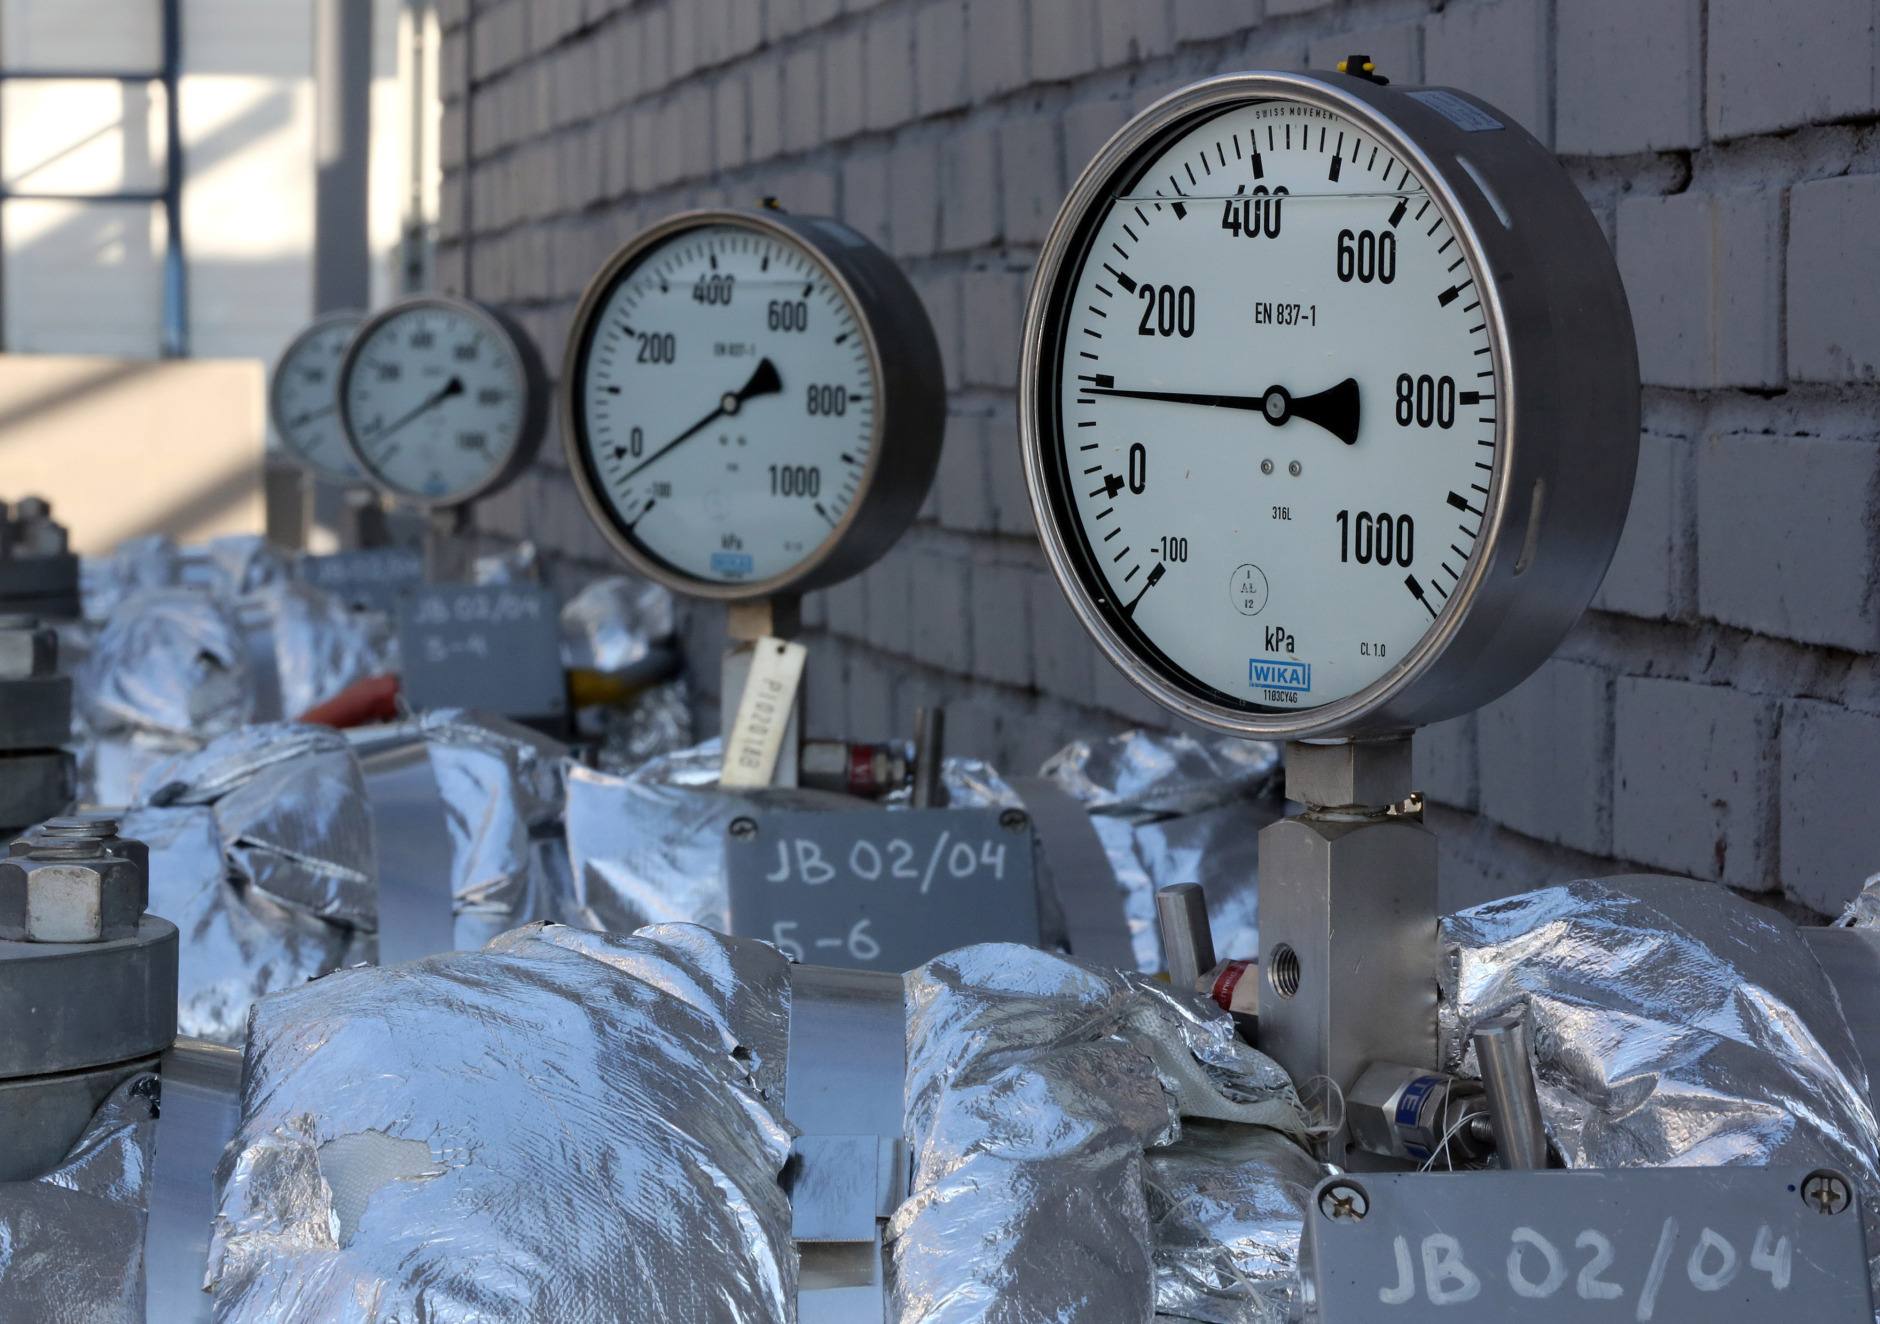 A row of manometers, a gauge for measuring gas, is seen on pipe work at the OAO Gazprom Neft oil refinery in Moscow, Russia. Photographer: Andrey Rudakov/Bloomberg